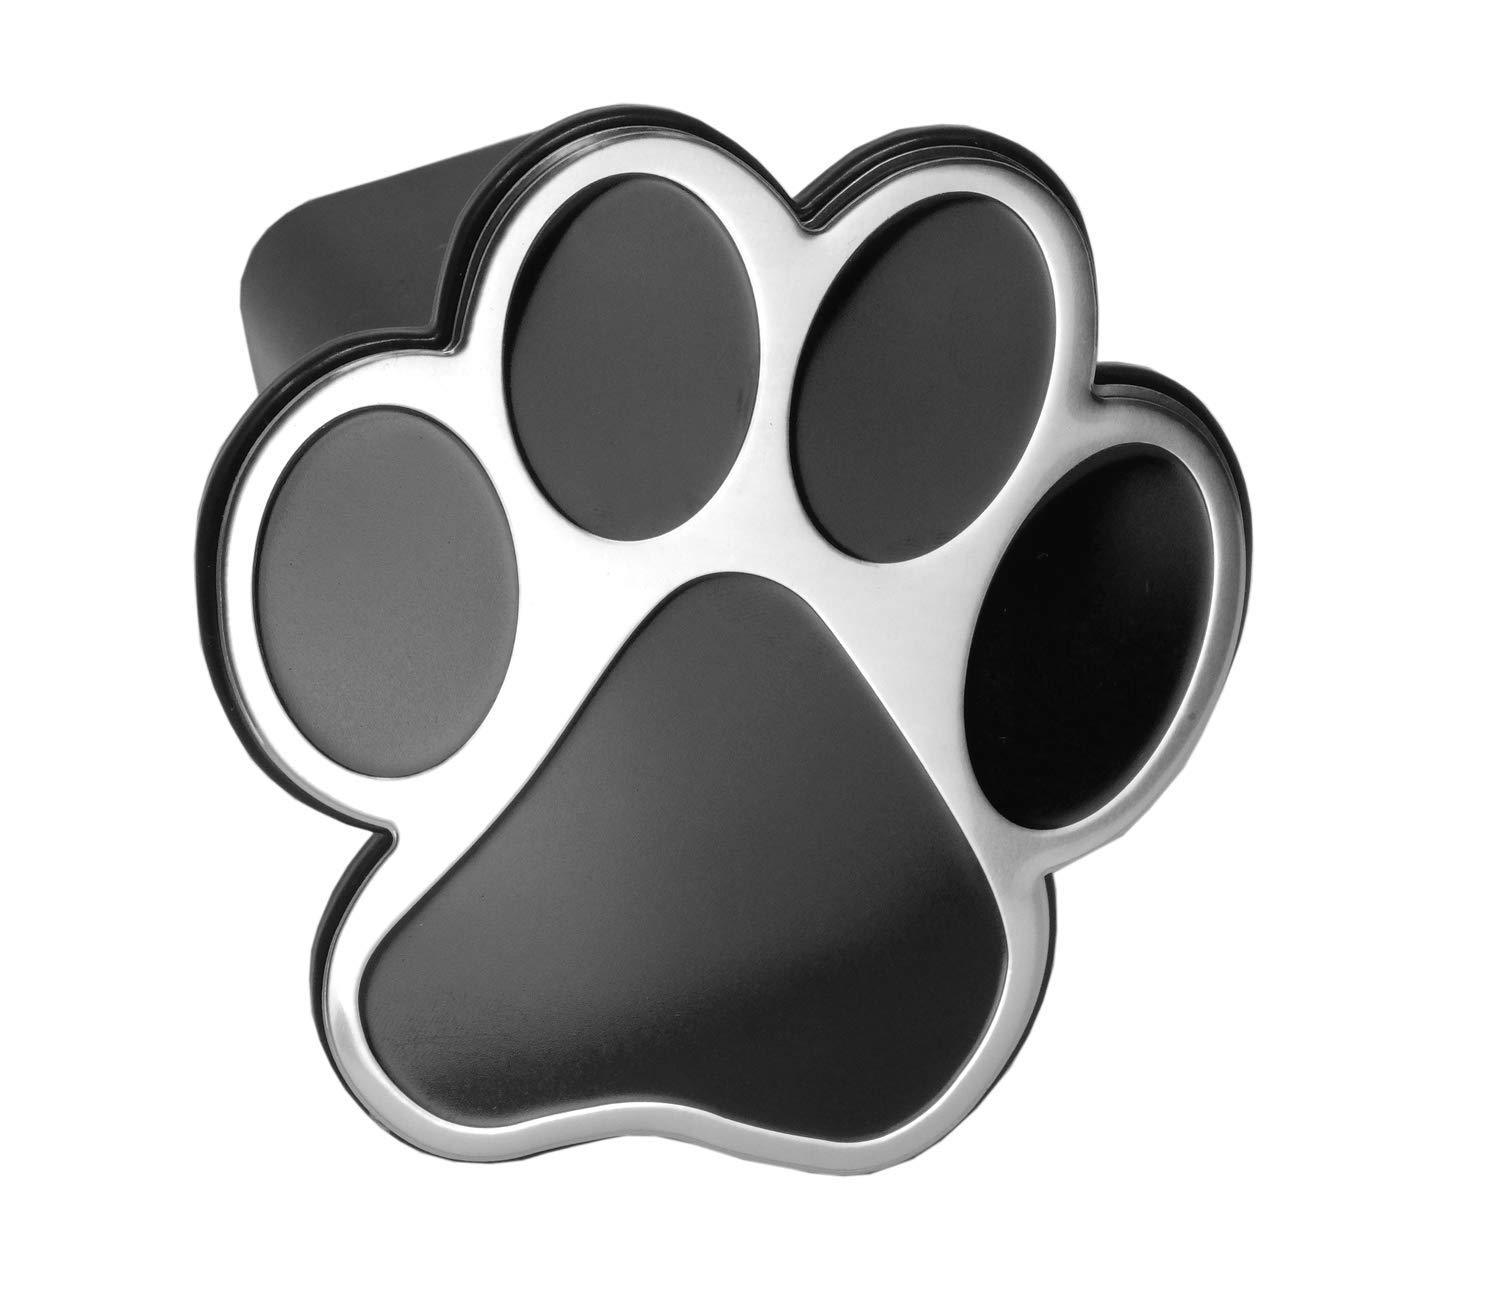 LFPartS Dog Animal Paw Foot Emblem Metal Trailer Hitch Cover (Fit 2'' Receivers, Chrome & Black) by LFPartS